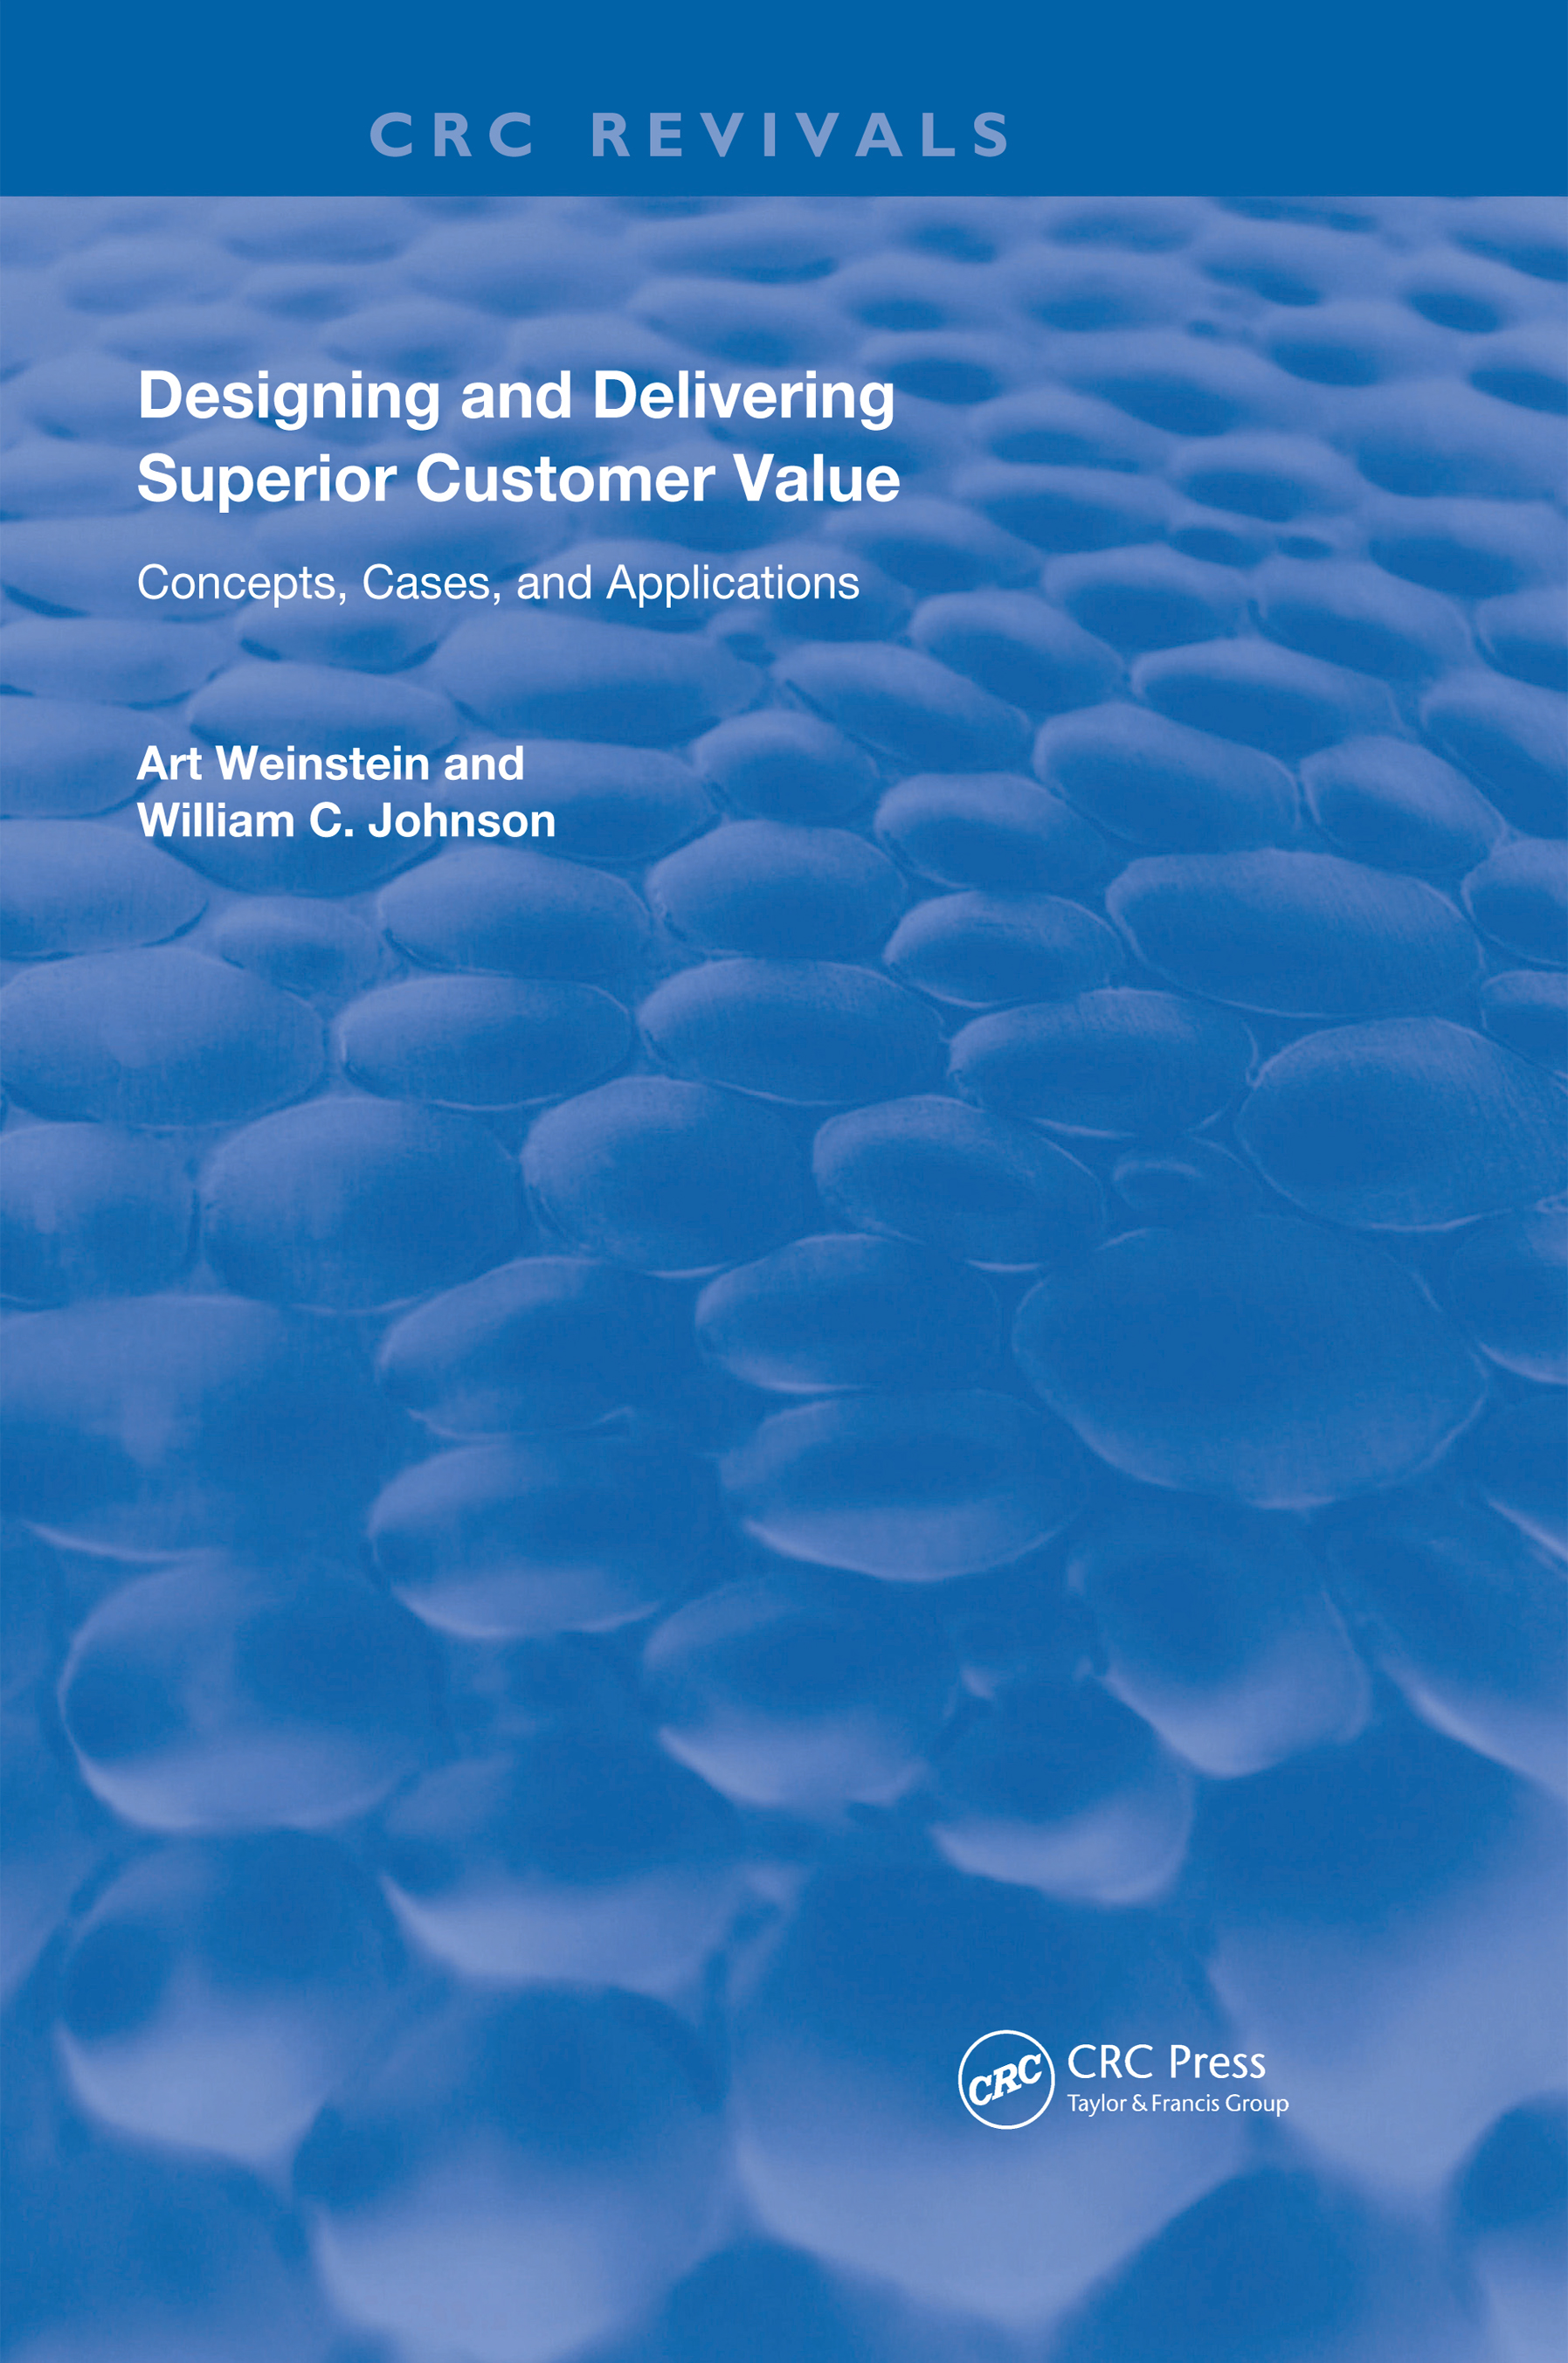 Designing and Delivering Superior Customer Value: Concepts, Cases, and Applications book cover